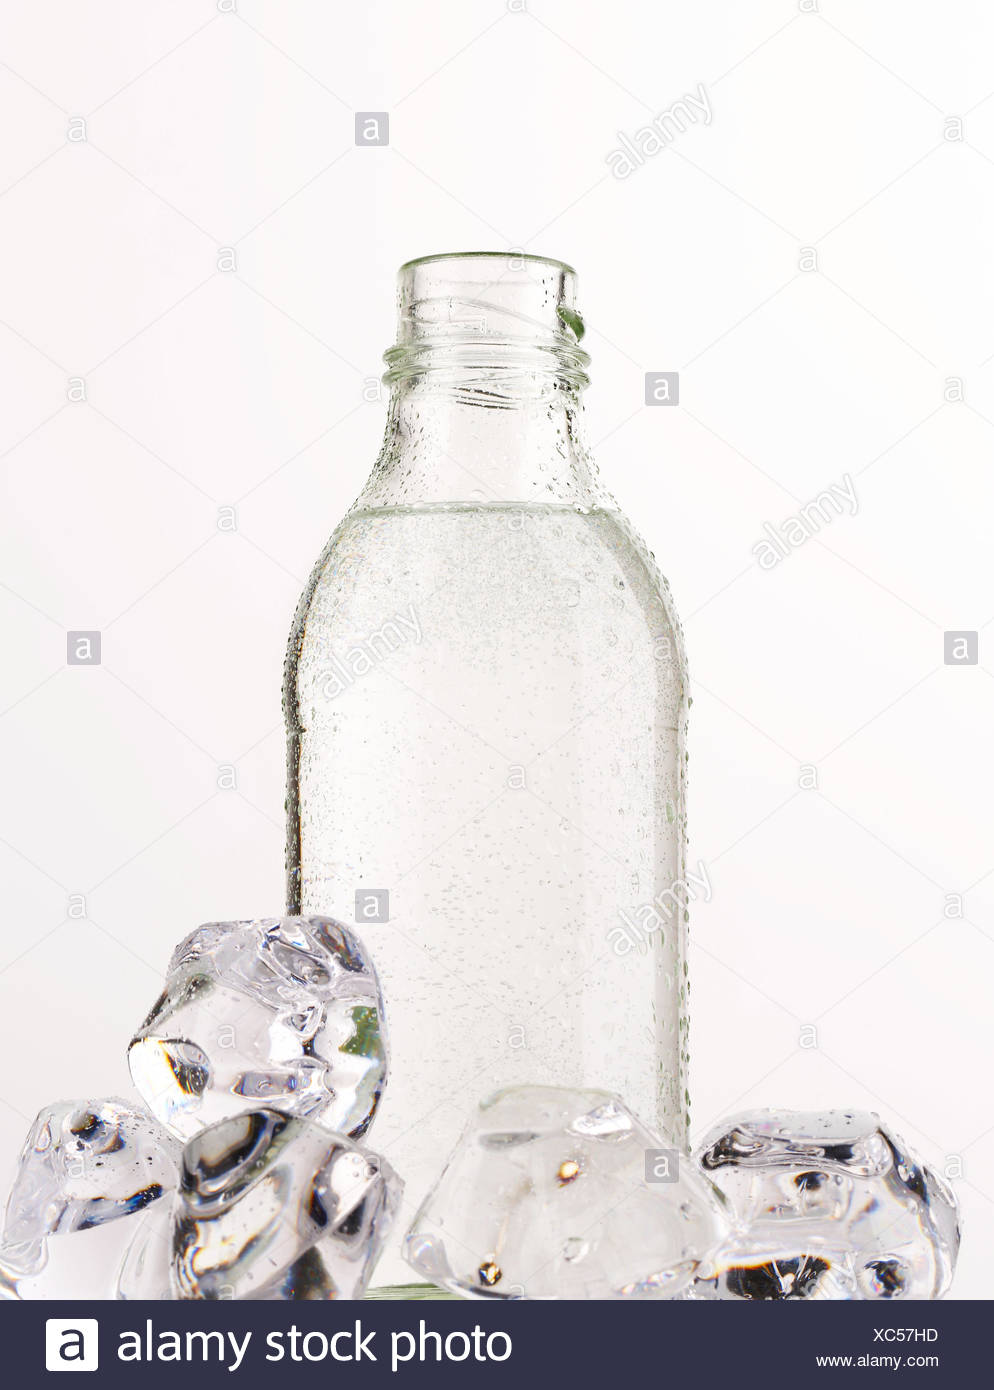 Purified water in a glass bottle - Stock Image